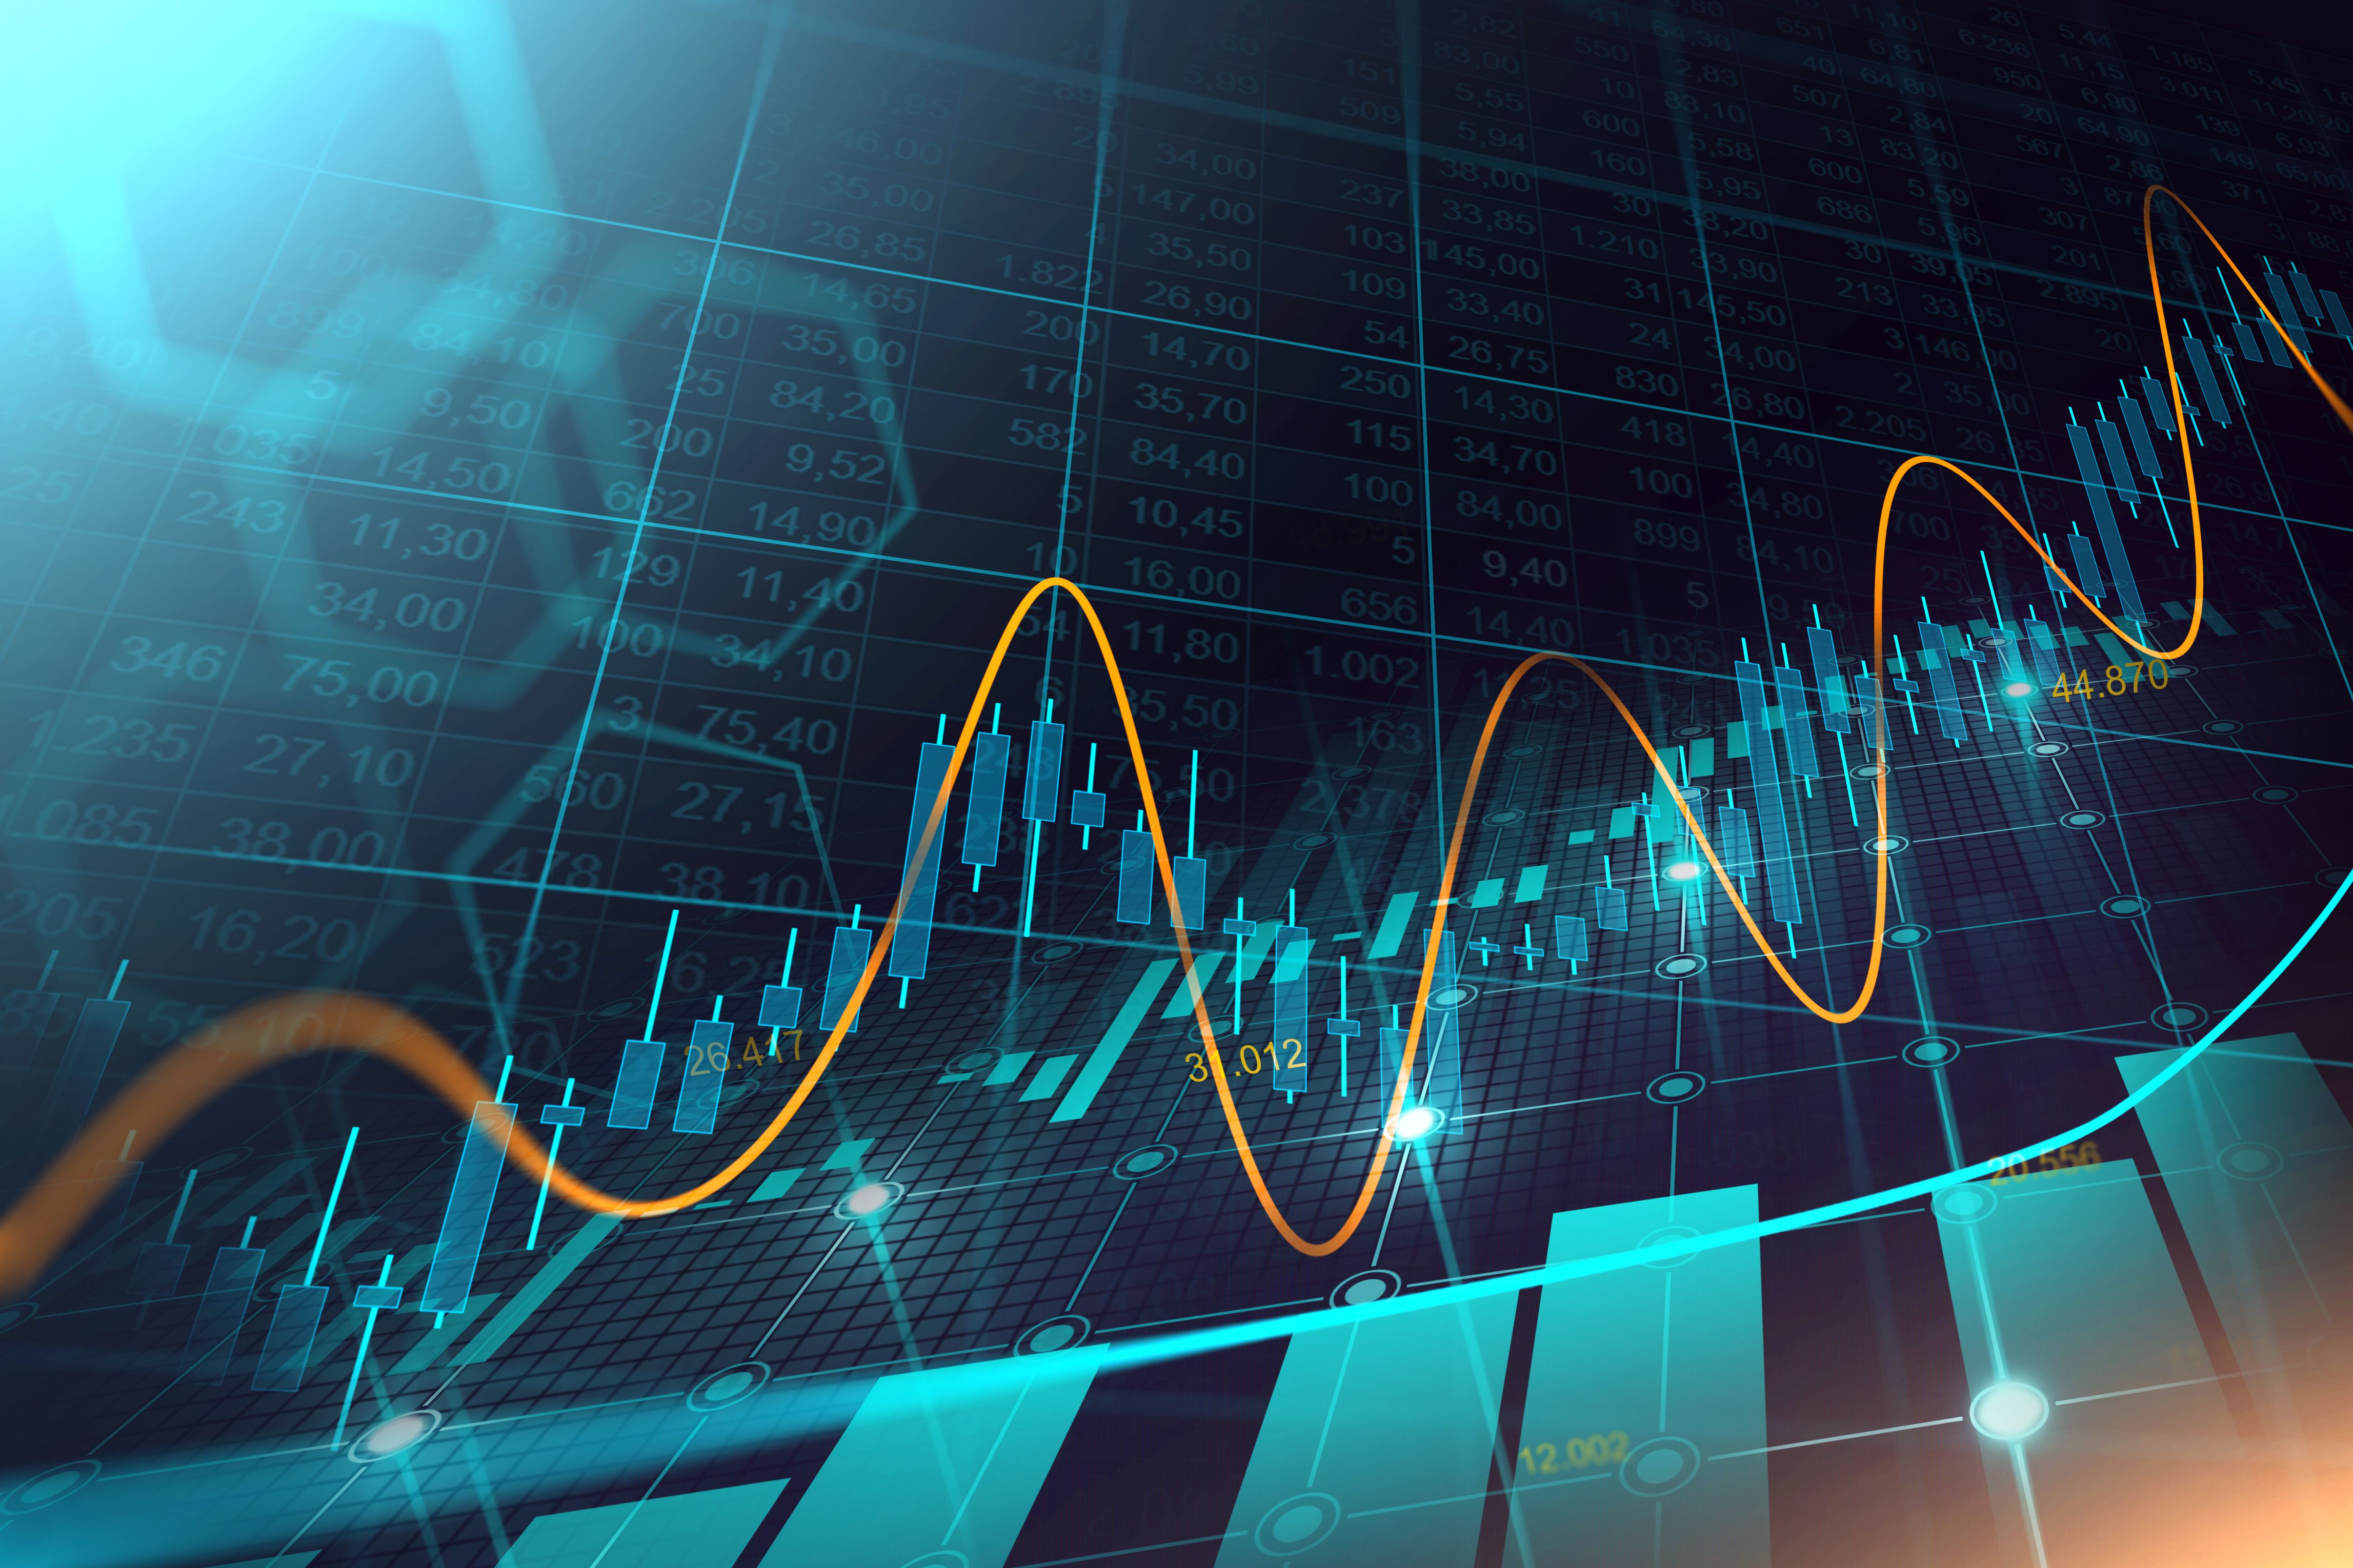 The Stock Market Of Forex Trading In Double Exposure Display Concept In 2020 Stock Market Forex Trading Economic Trends